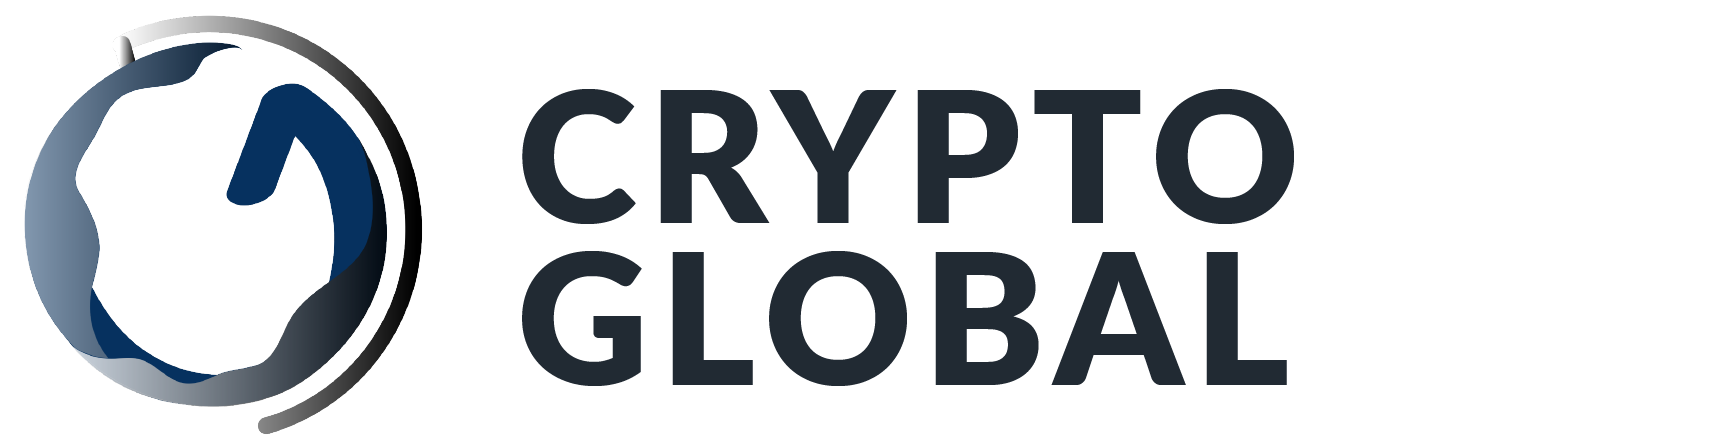 Cryptoglobal.io